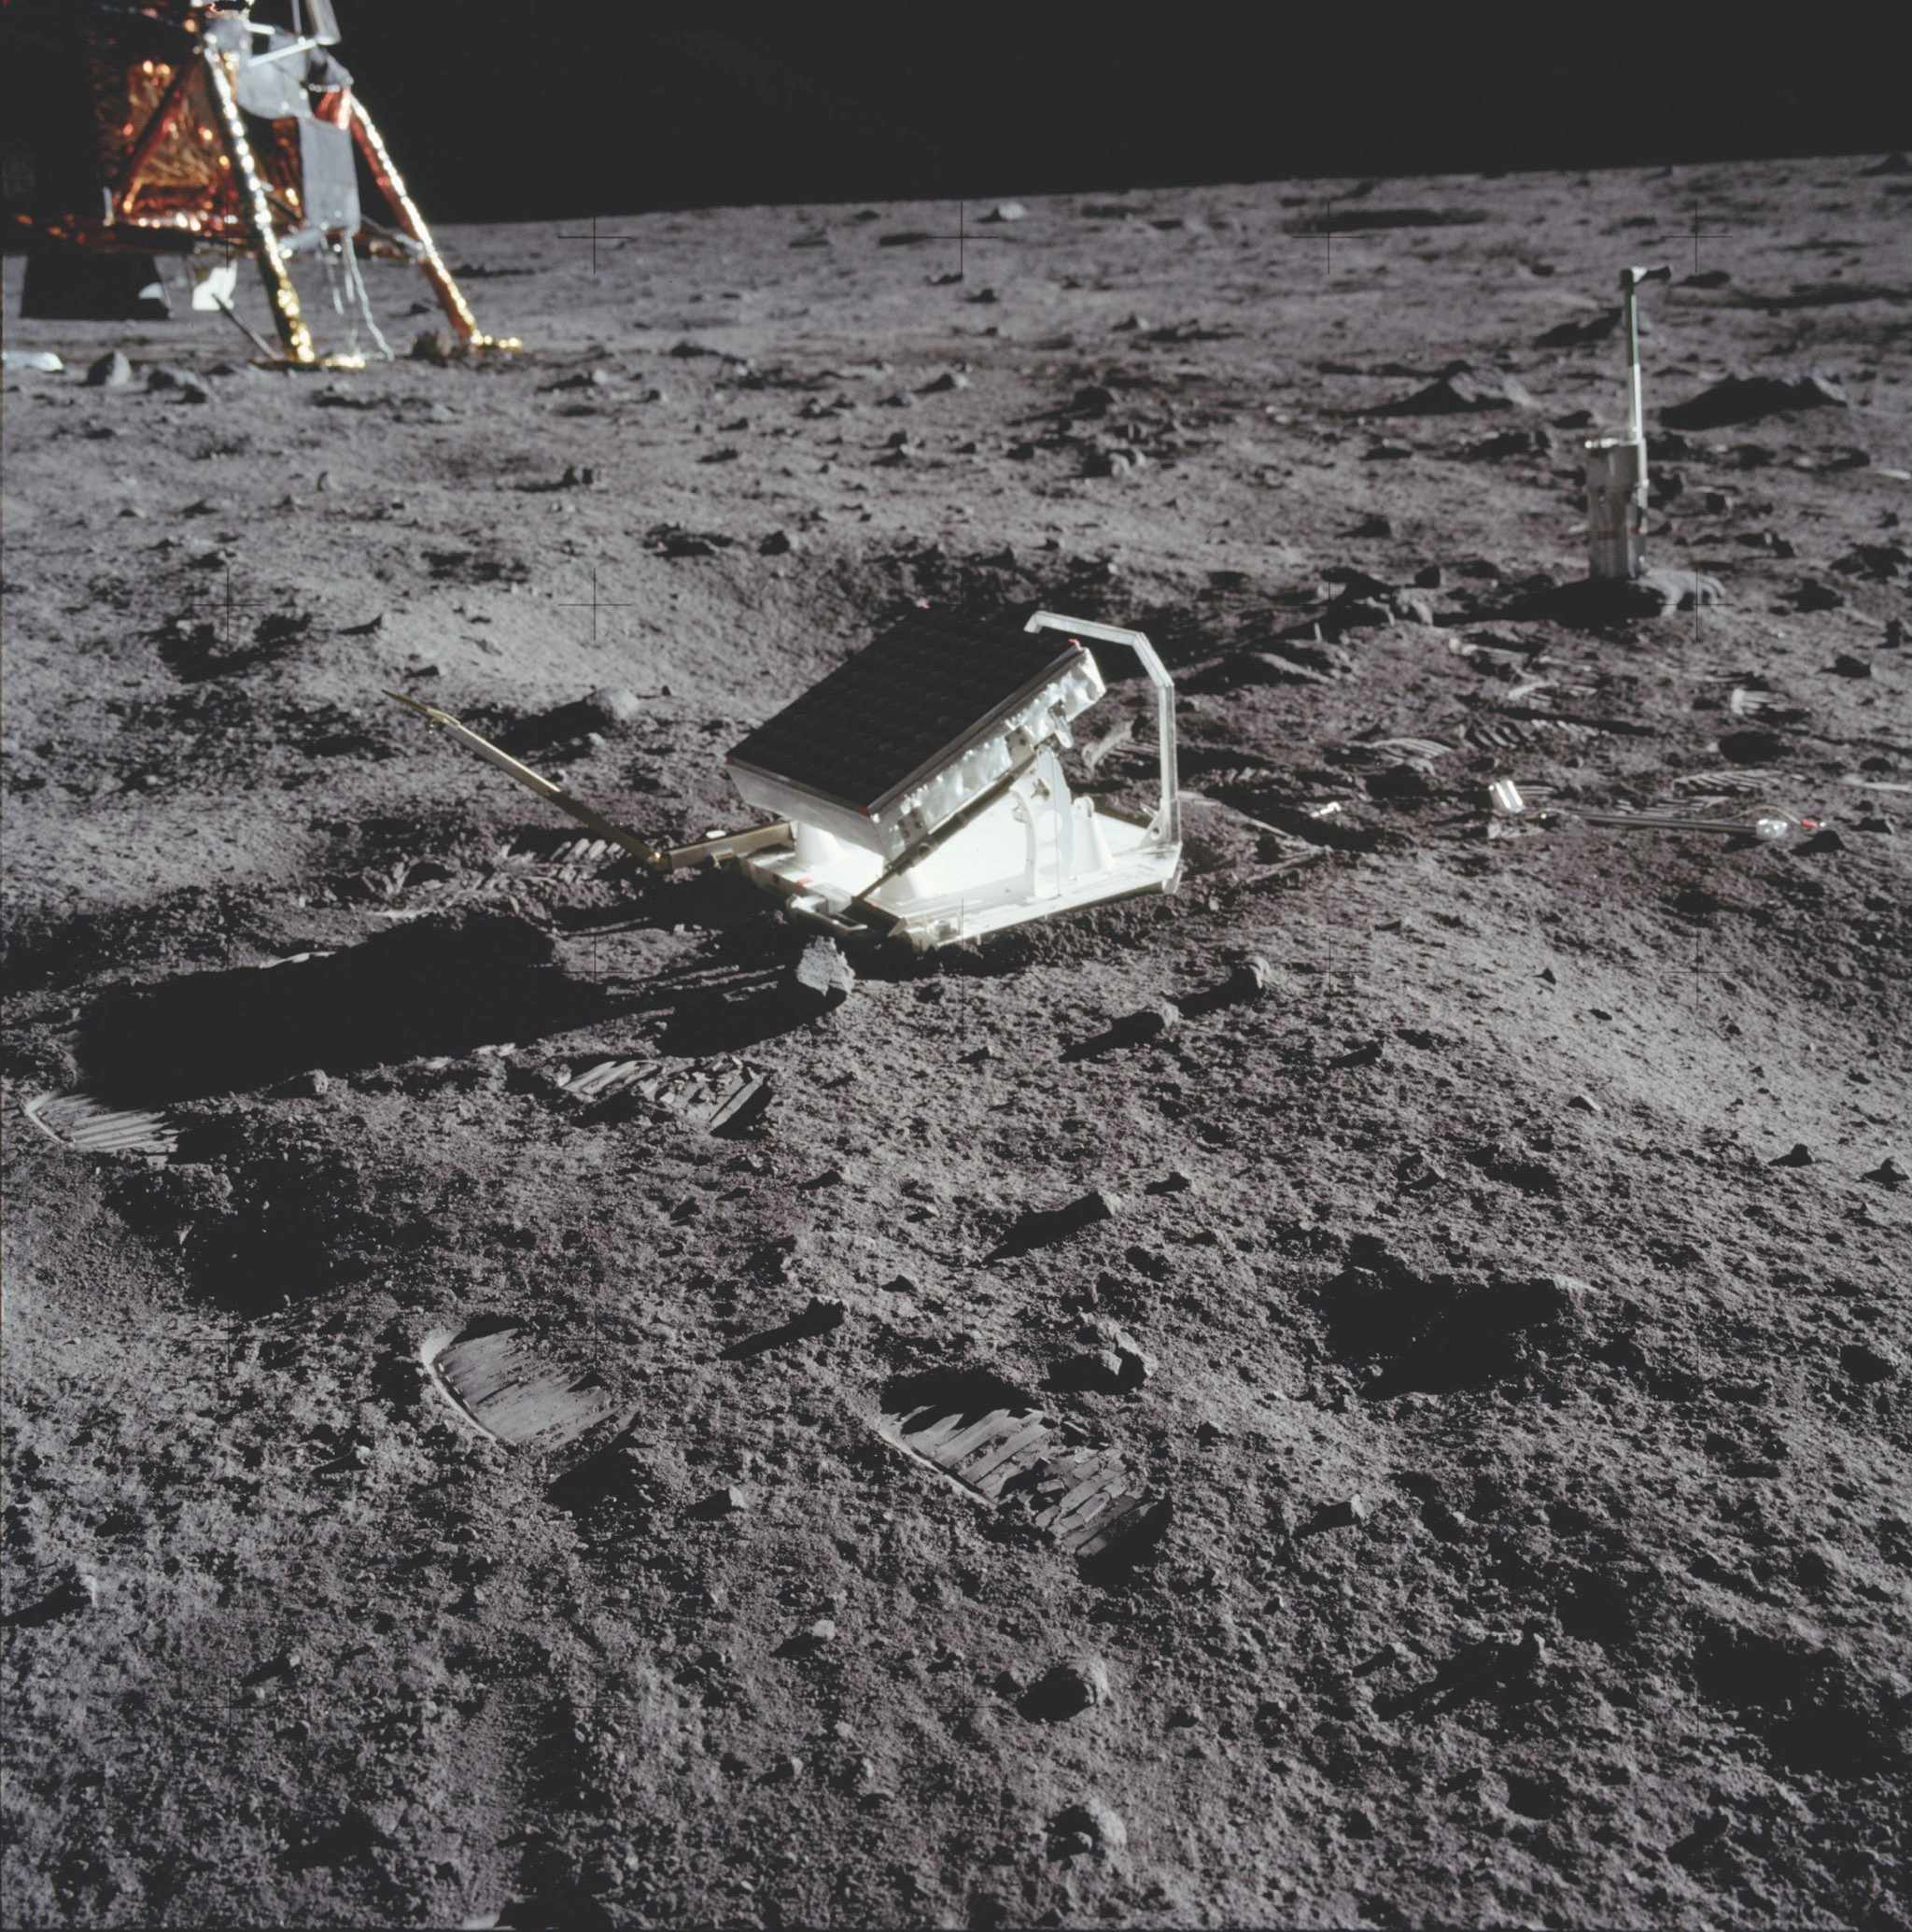 This first laser ranging reflector to be placed on the Moon was designed to monitor the distances between stations on Earth and the Apollo 11 landing site. The data has been used in studies of gravity, relativity and lunar geology. Made up of 100 small, fused silica cubes that reflect laser light directly back to its source, the reflector was placed about 14m from the lunar module. The first measurements were made at Lick Observatory on 1 August 1969 and are still being taken today. © NASA/JPL